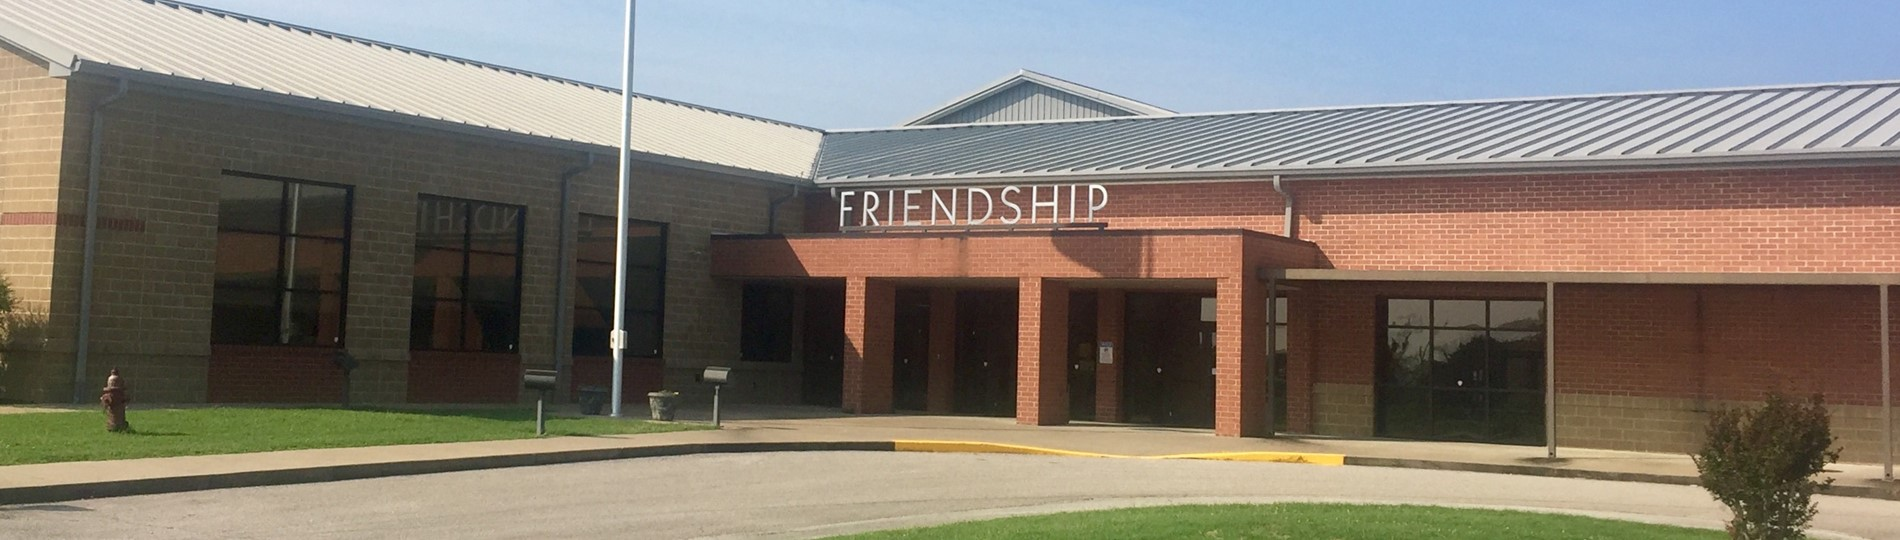 Welcome to Friendship Elementary School